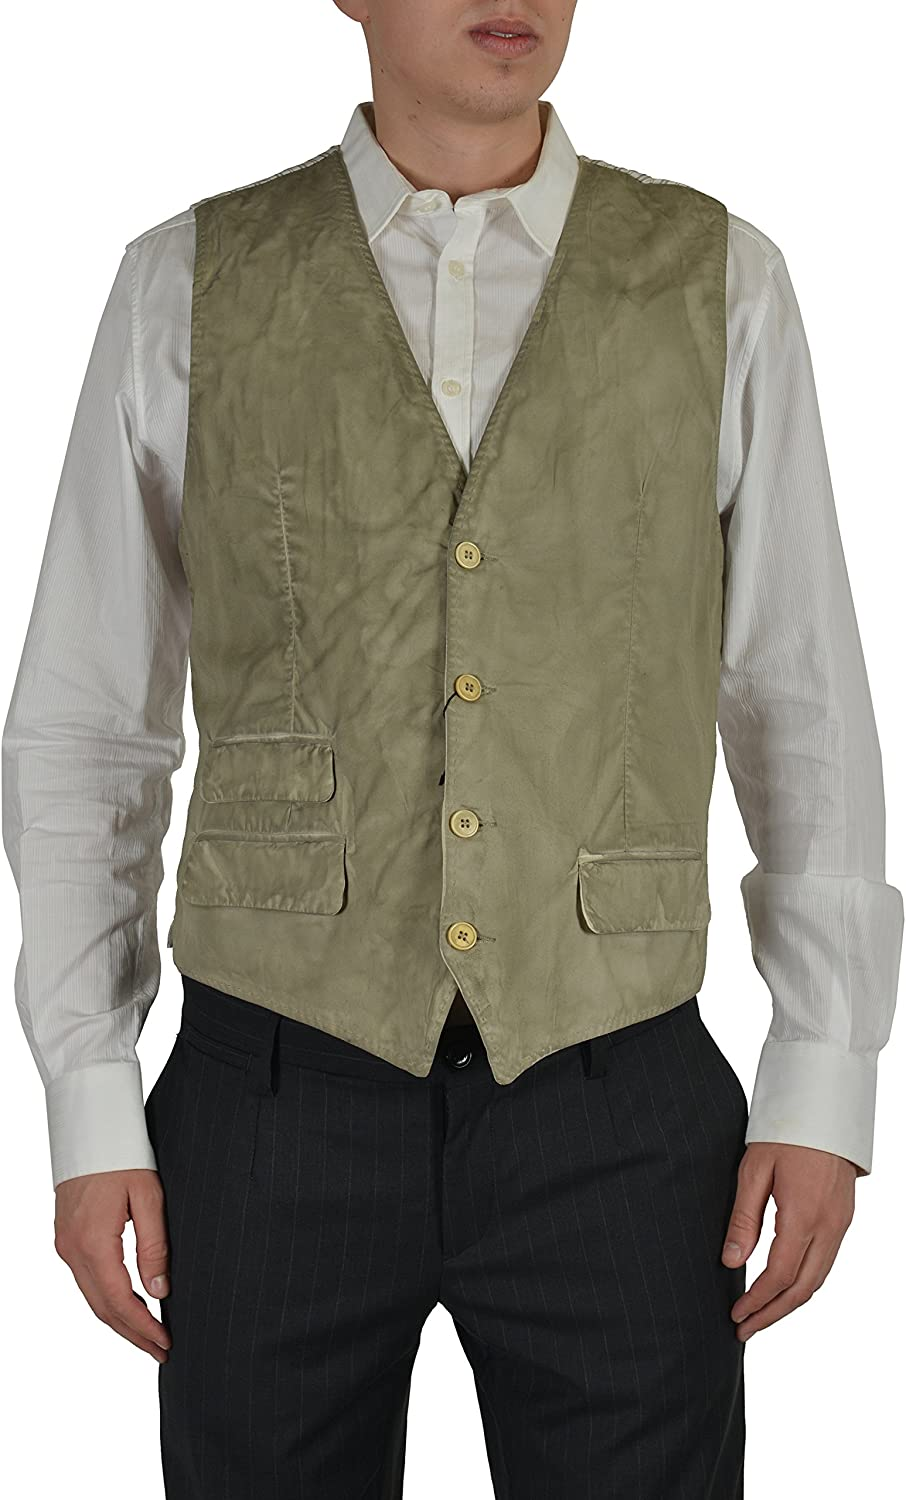 Dolce /& Gabbana D/&G Mens Beige Four Button Vest Size US 38 IT 48